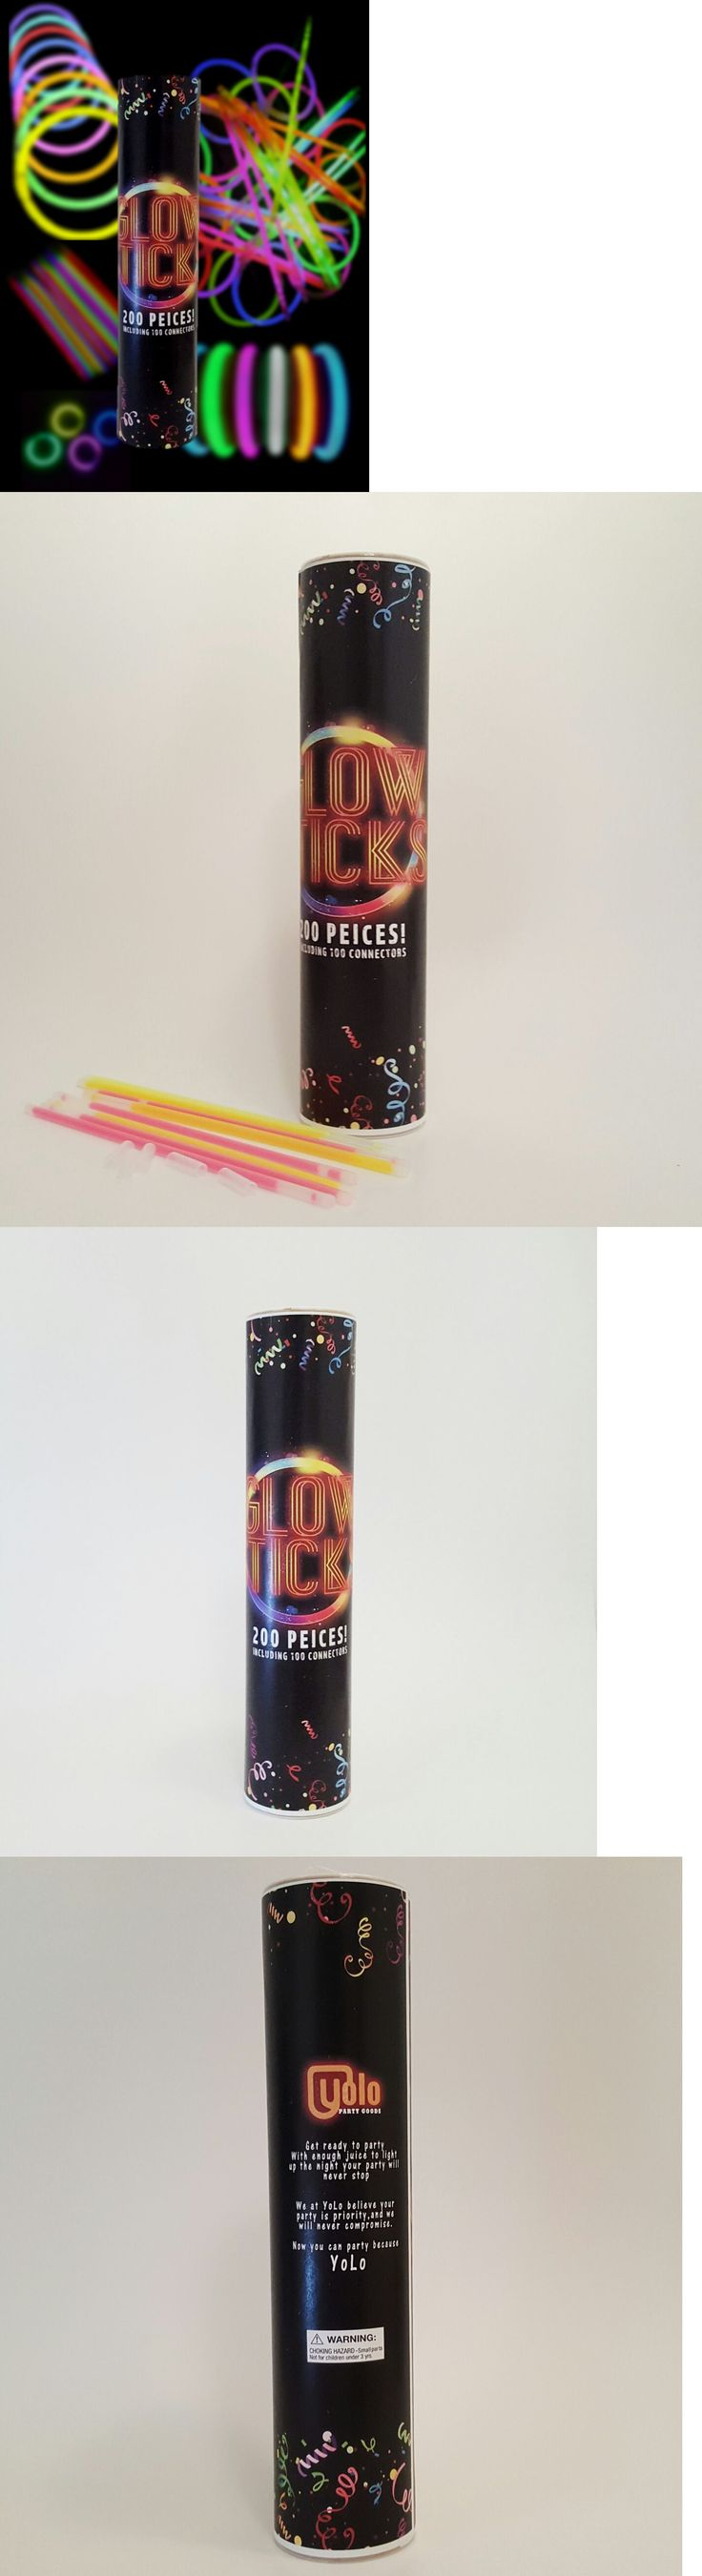 Glow Sticks 51019: Bulk 8 Glow Sticks Yolo Party Goods Brand Multi-Colors Available In 5-25 Tubes -> BUY IT NOW ONLY: $168.99 on eBay!